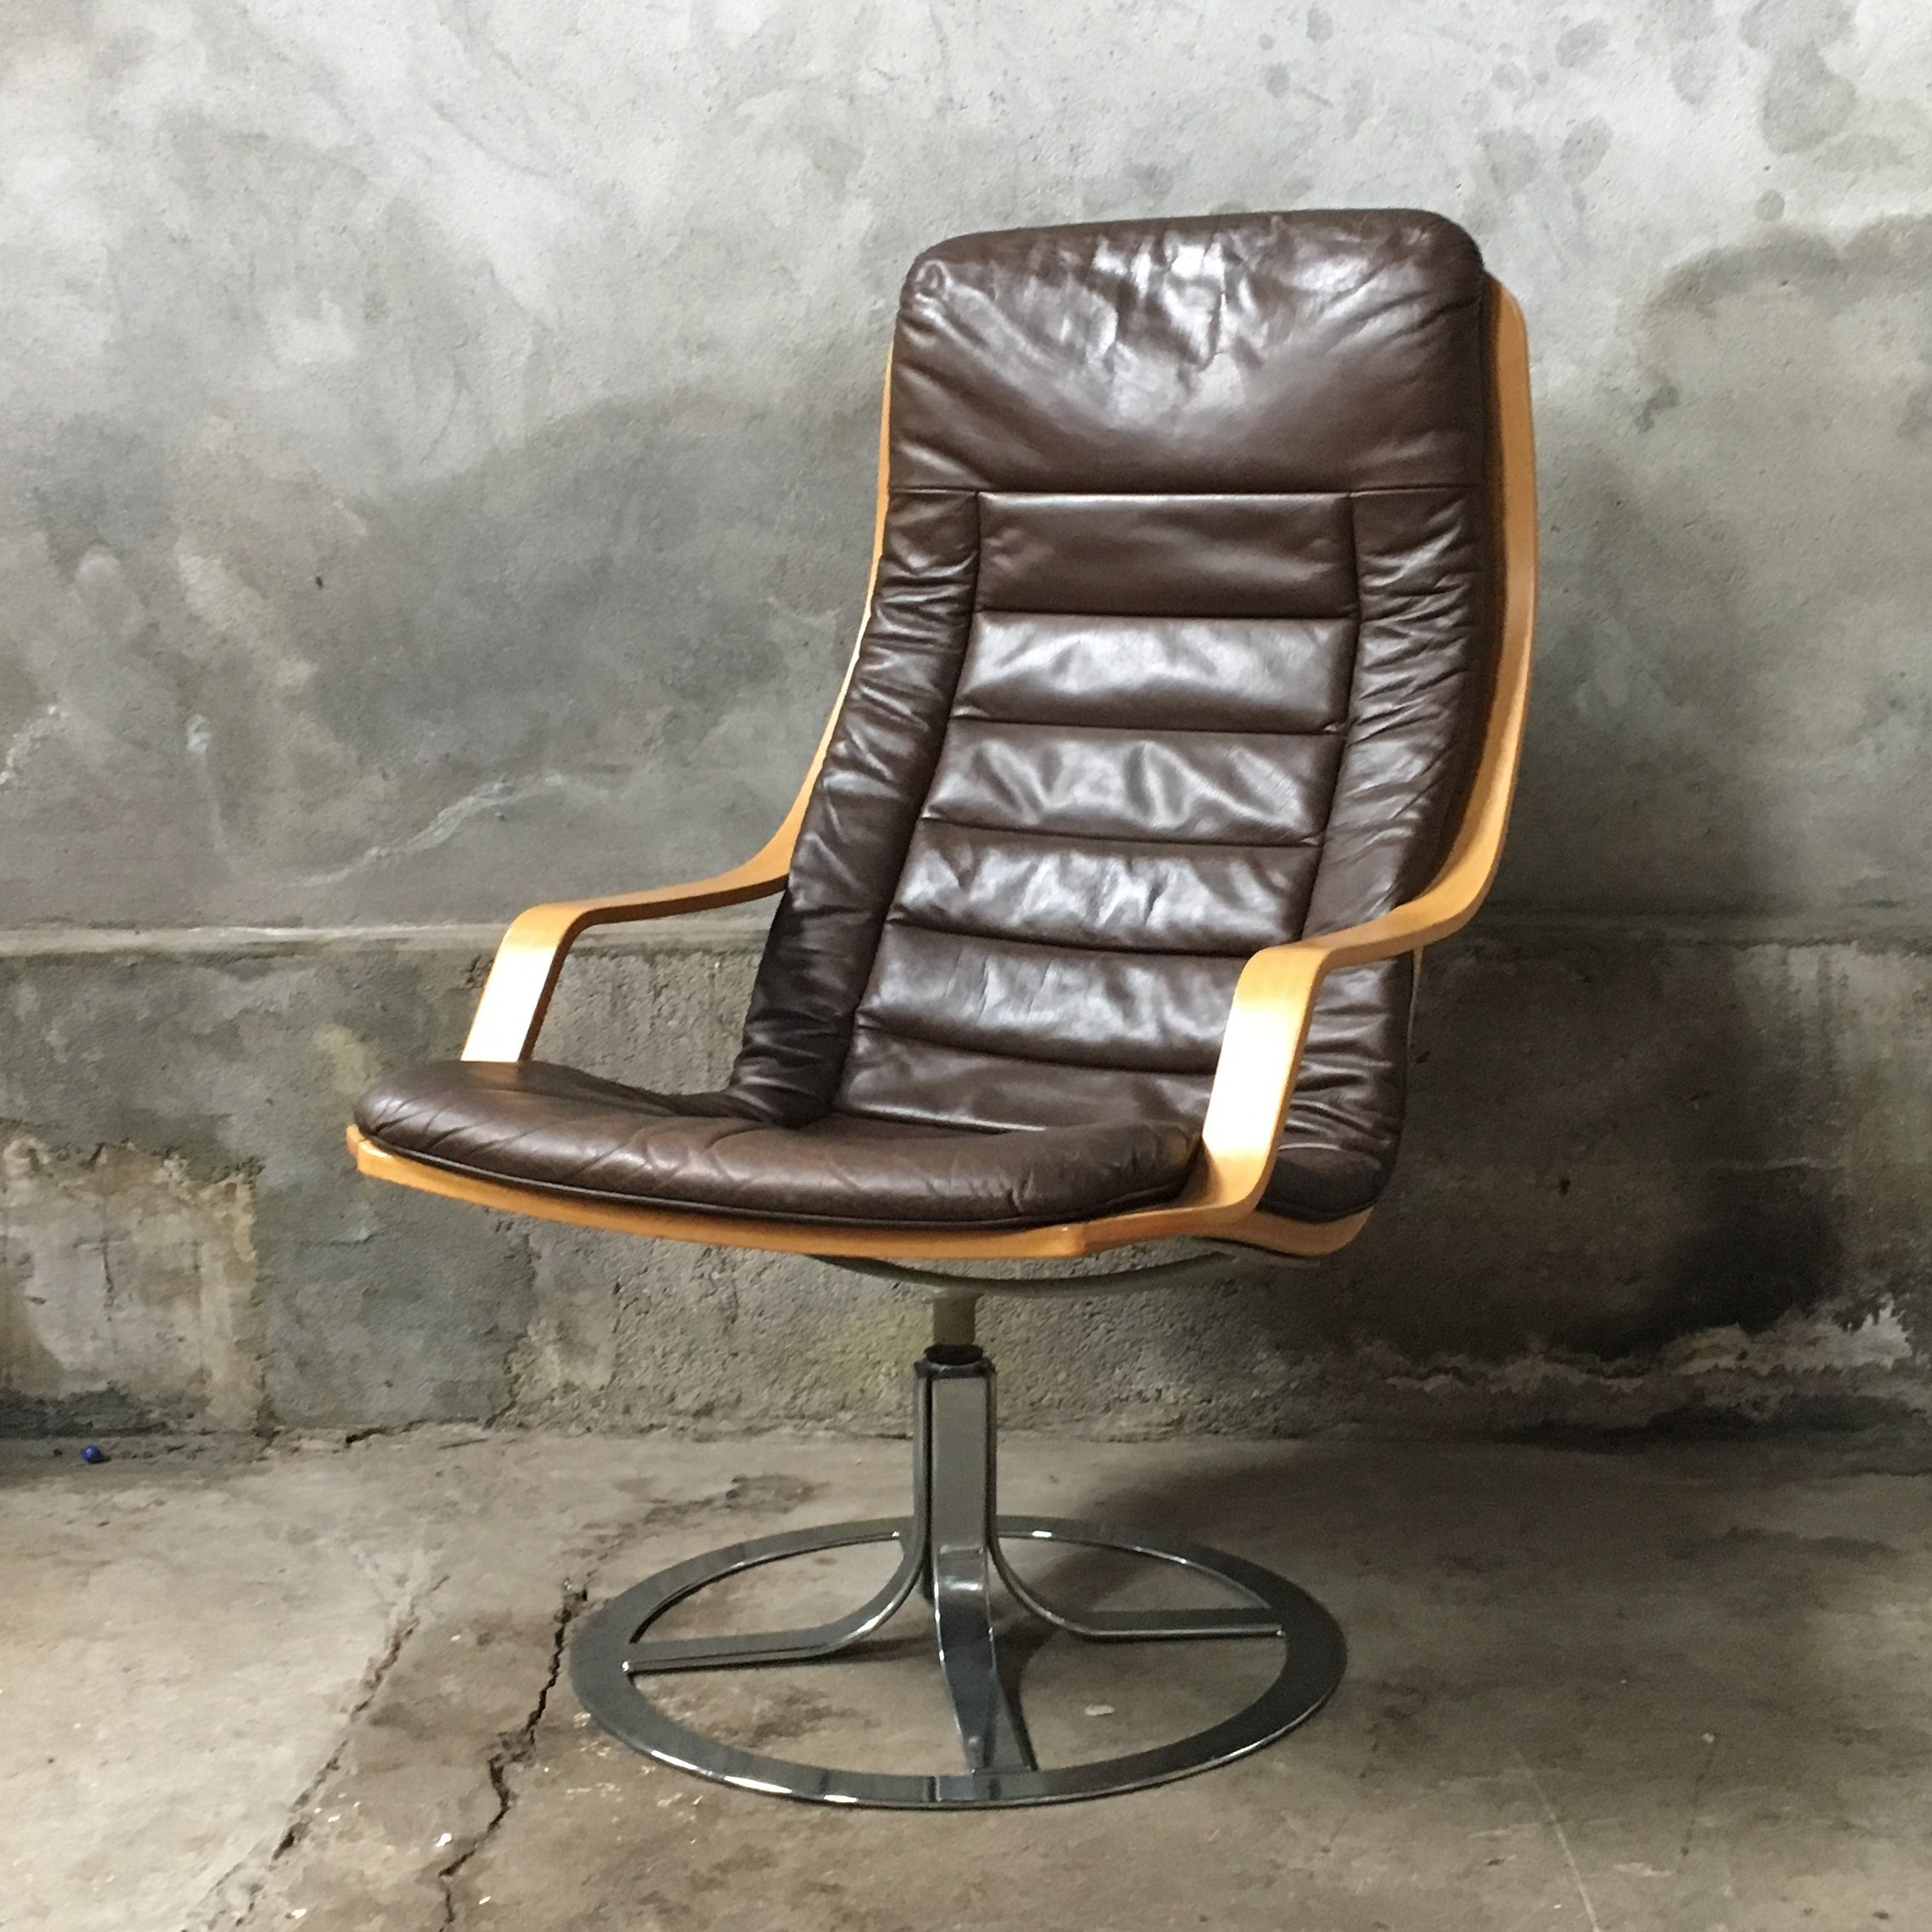 Captivating Hanau Möbelhaus Gallery Of G Mobel Lounge Chair, 1970s